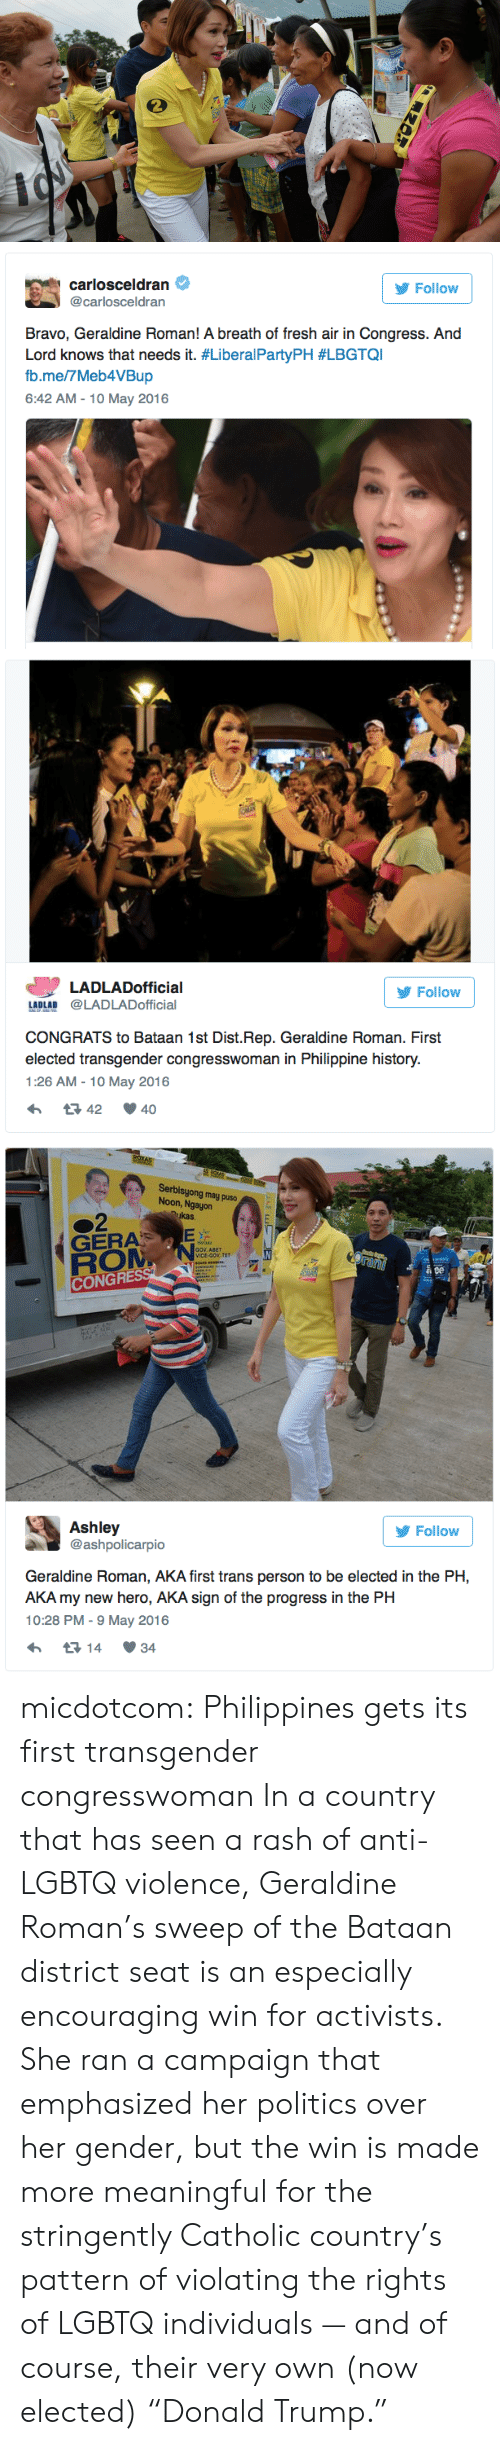 """Breath Of Fresh Air: carlosceldran  @carlosceldran  Follow  Bravo, Geraldine Roman! A breath of fresh air in Congress. And  Lord knows that needs it. #LiberalPartyPH #LBGTQI  b.me/7Meb4VBup  6:42 AM - 10 May 2016   LADLADofficial  Follow  LADLAD @LADLADofficial  CONGRATS to Bataan 1st Dist.Rep. Geraldine Roman. First  elected transgender congresswoman in Philippine history.  1:26 AM-10 May 2016  42 40   Serbisyong may puso  Noon, Ngayon  kas  GERA  GOV ABET  VICE-GOV TET  CONGR  Ashley  @ashpolicarpio  У Follow  Geraldine Roman, AKA first trans person to be elected in the PH,  AKA my new hero, AKA sign of the progress in the PH  10:28 PM- 9 May 2016  14 34 micdotcom: Philippines gets its first transgender congresswoman In a country that has seen a rash of anti-LGBTQ violence, Geraldine Roman's sweep of the Bataan district seat is an especially encouraging win for activists. She ran a campaign that emphasized her politics over her gender, but the win is made more meaningful for the stringently Catholic country's pattern of violating the rights of LGBTQ individuals — and of course, their very own (now elected) """"Donald Trump."""""""